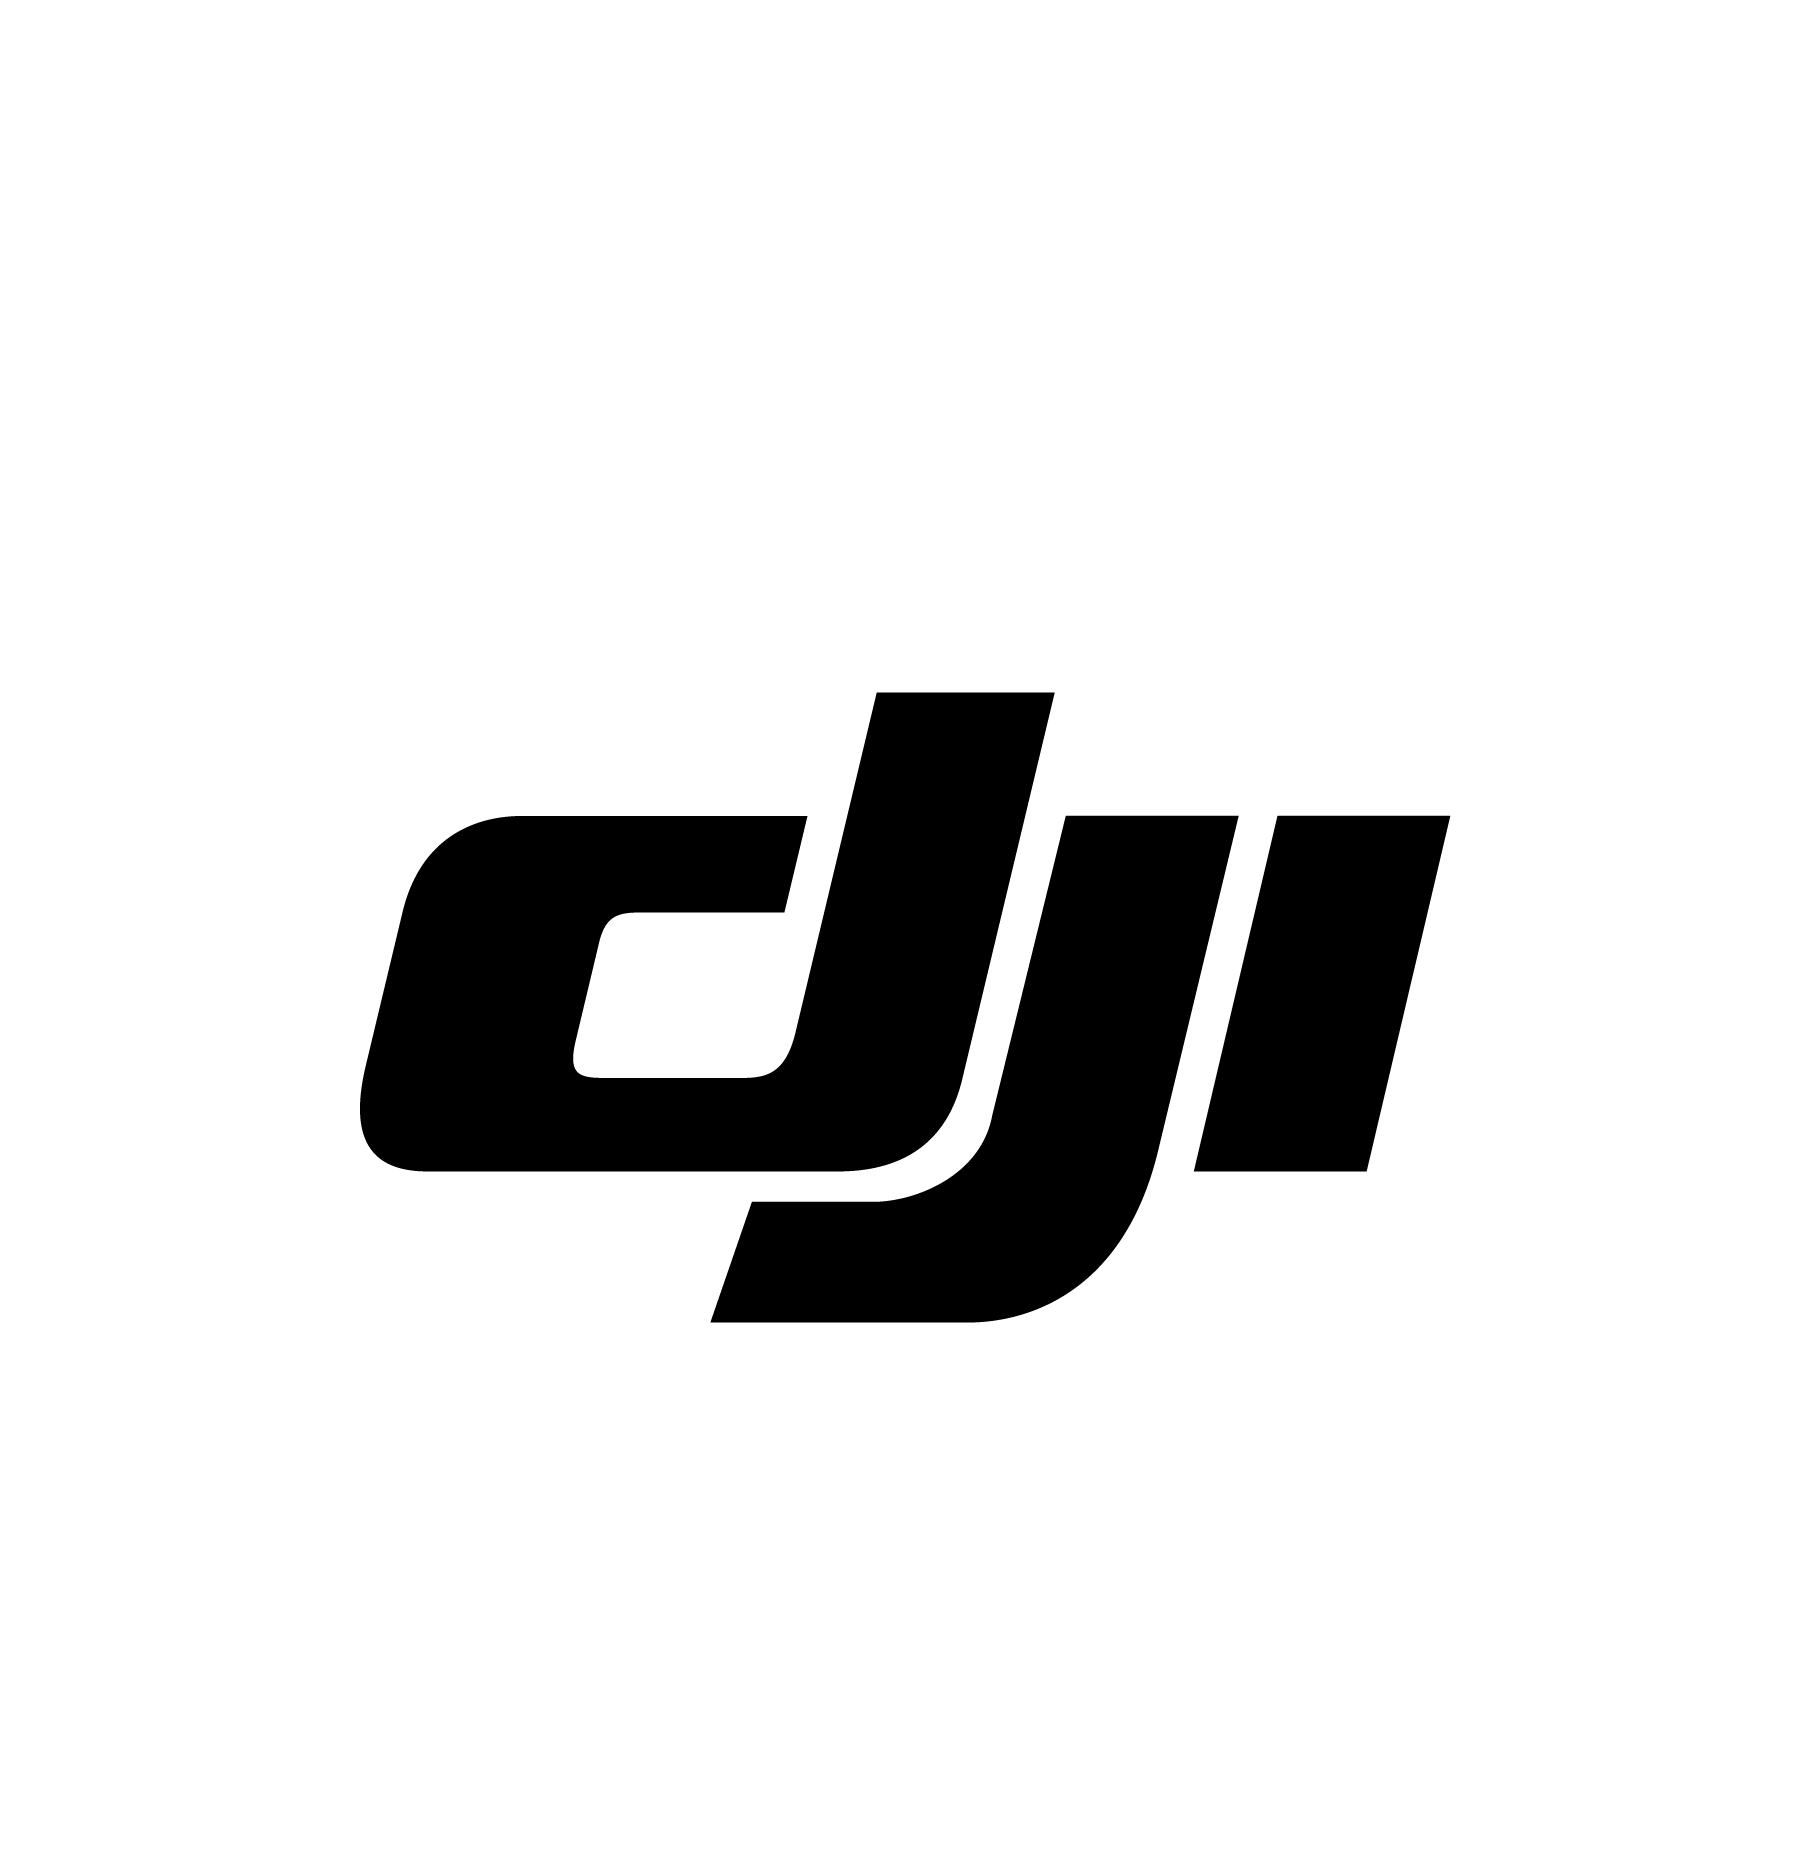 We use DJI drones - Find out more